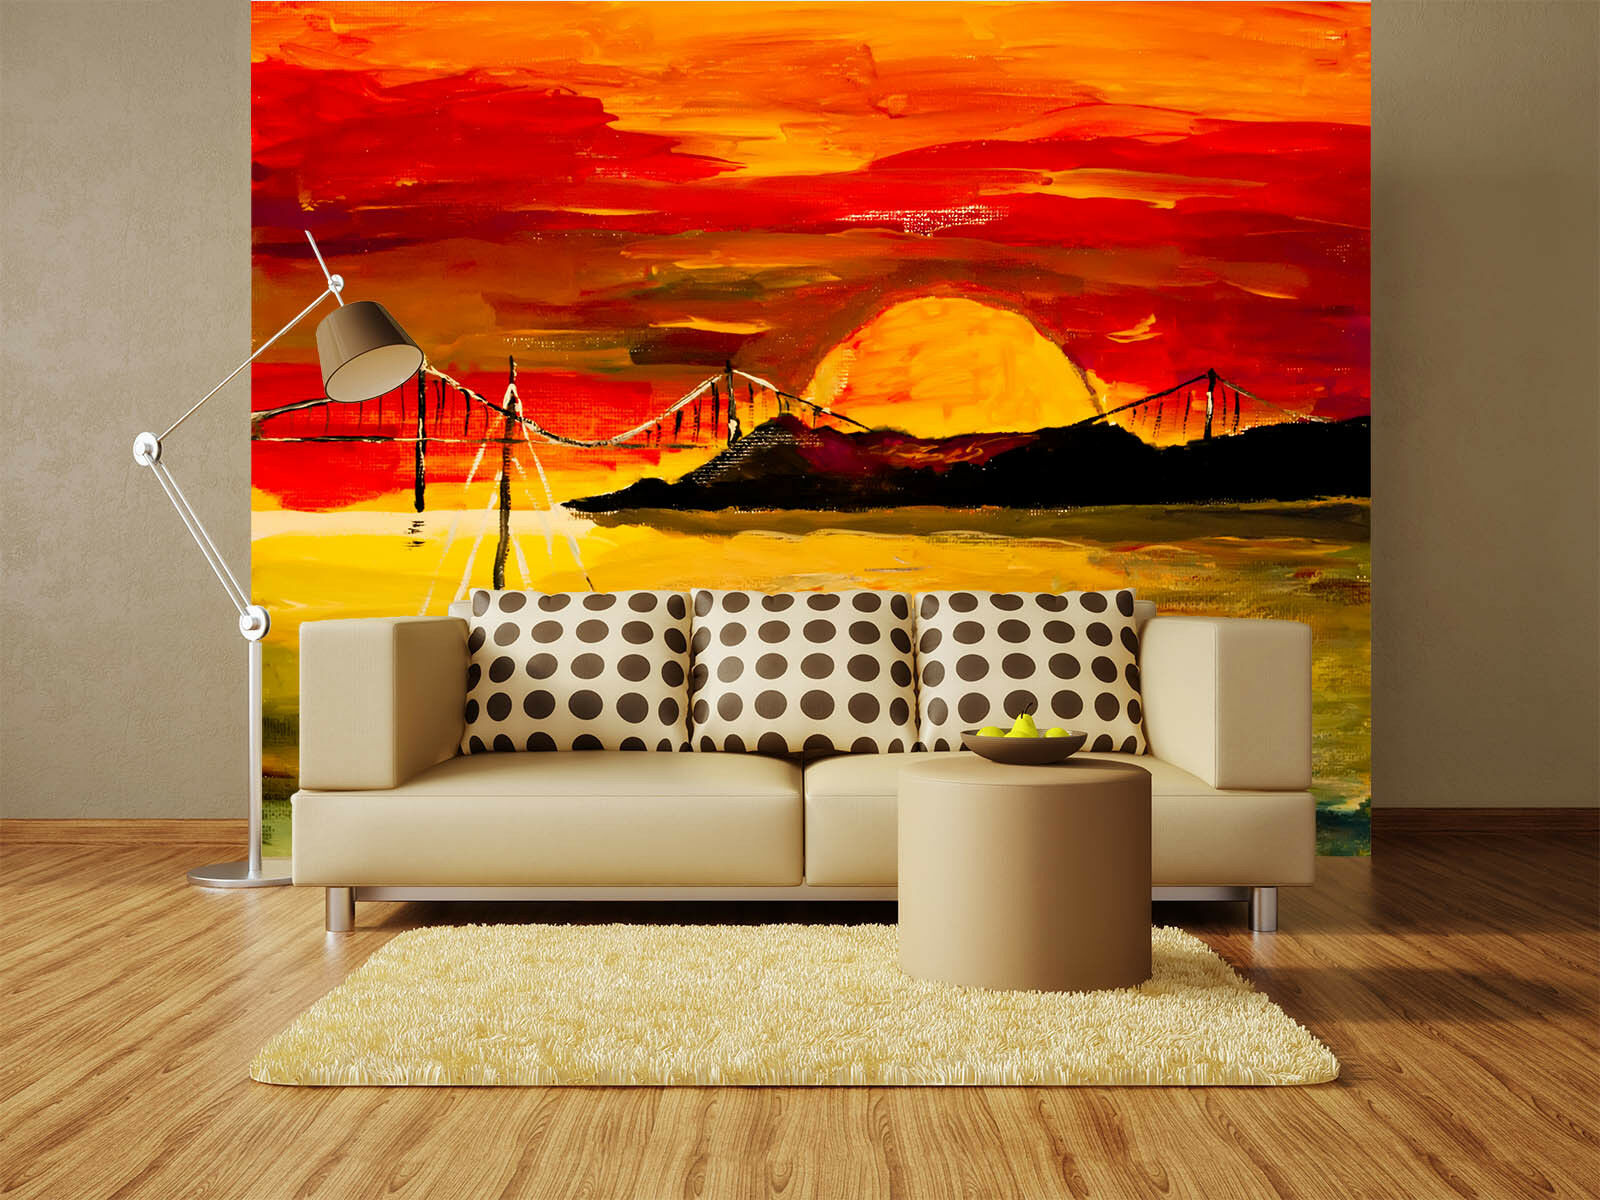 3D Sunset Sunlight Lake 06 Wall Paper Wall Print Decal Wall AJ WALLPAPER CA